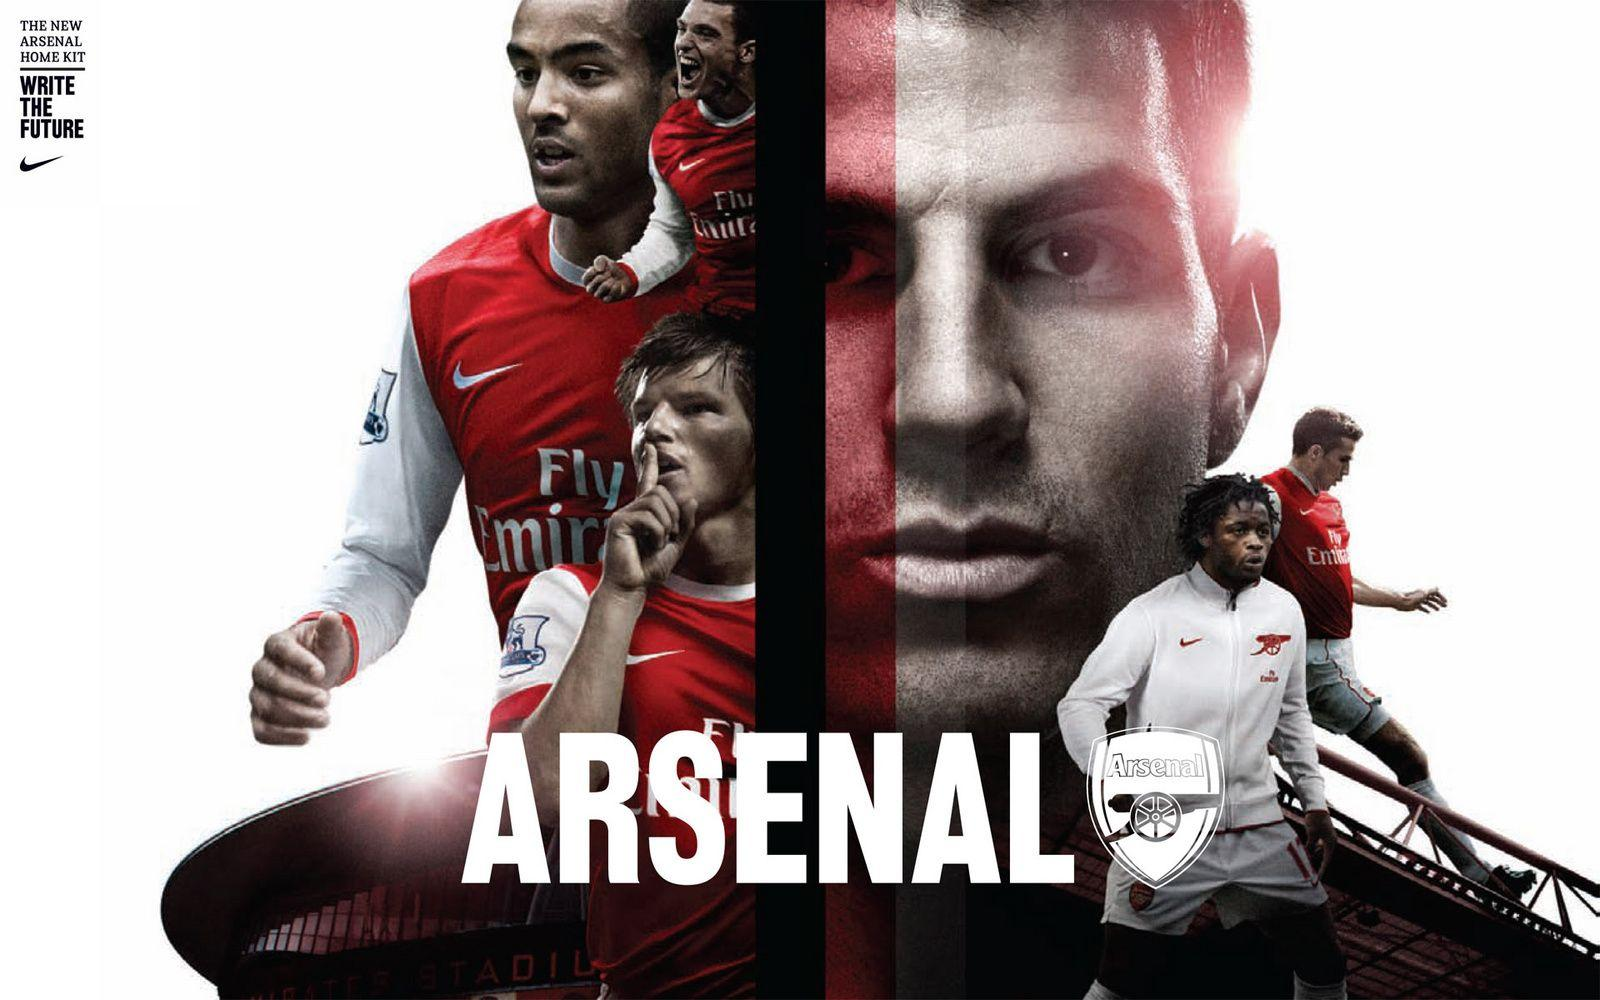 Arsenal Wallpaper 2012 Hd Wallpaper | Football Wallpaper HD